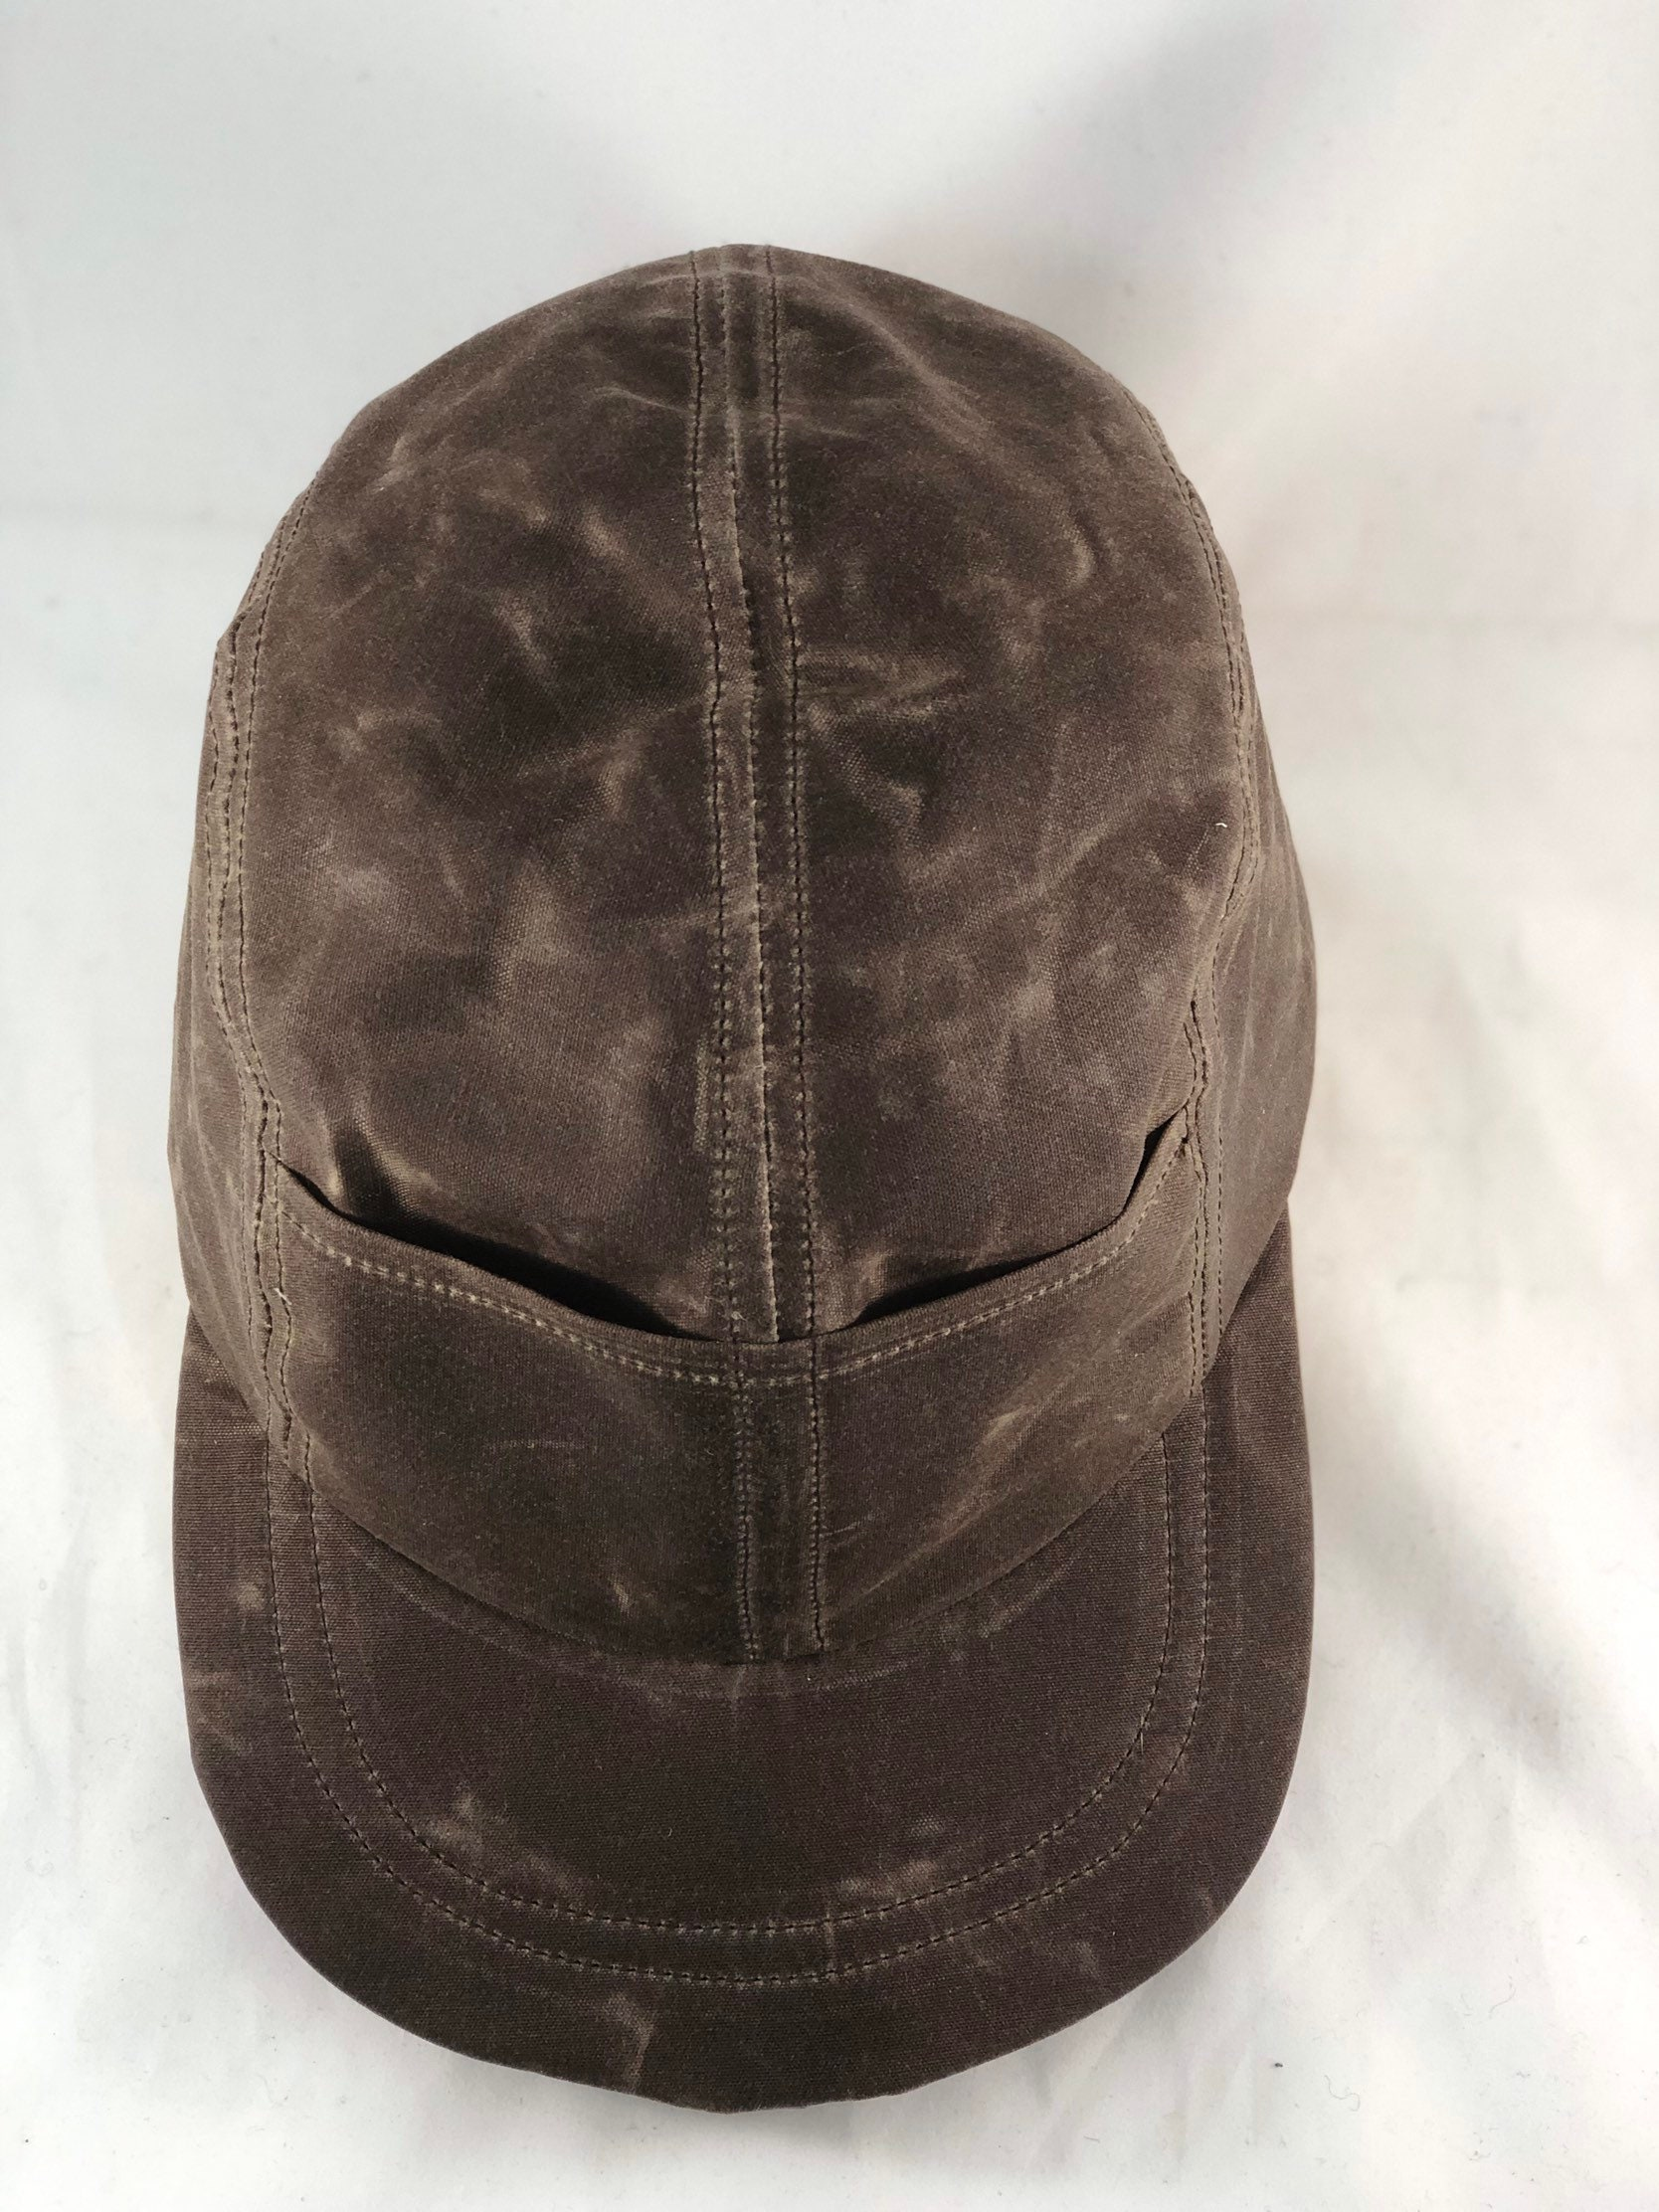 Quint Fishing Cap Waxed Cotton 4 Panel Cap With Front